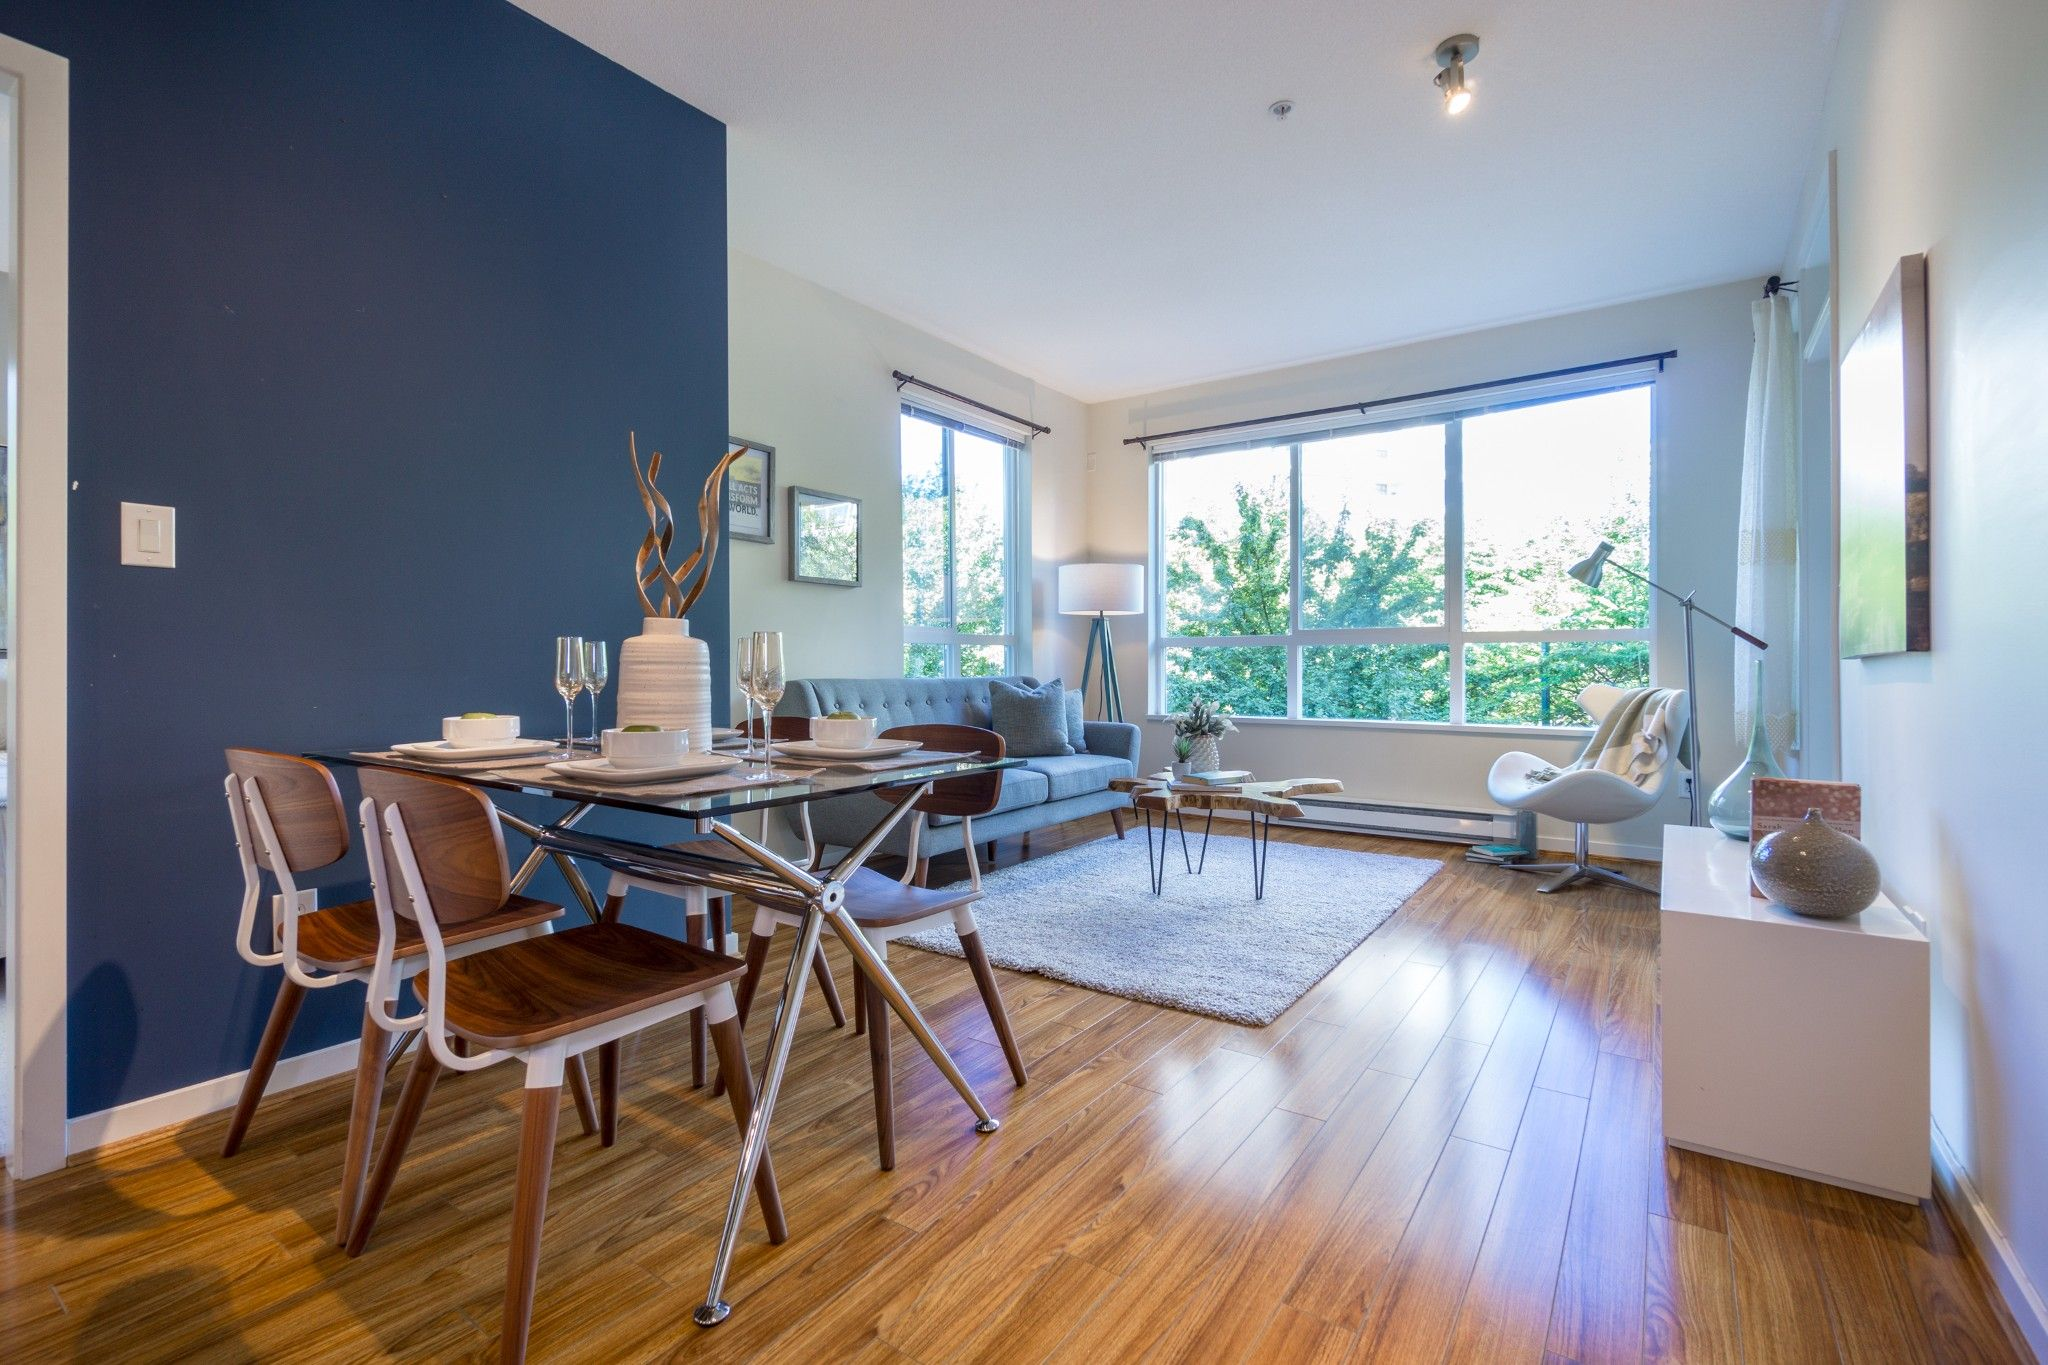 Photo 8: Photos: 208 3551 FOSTER Avenue in Vancouver: Collingwood VE Condo for sale (Vancouver East)  : MLS®# R2291555